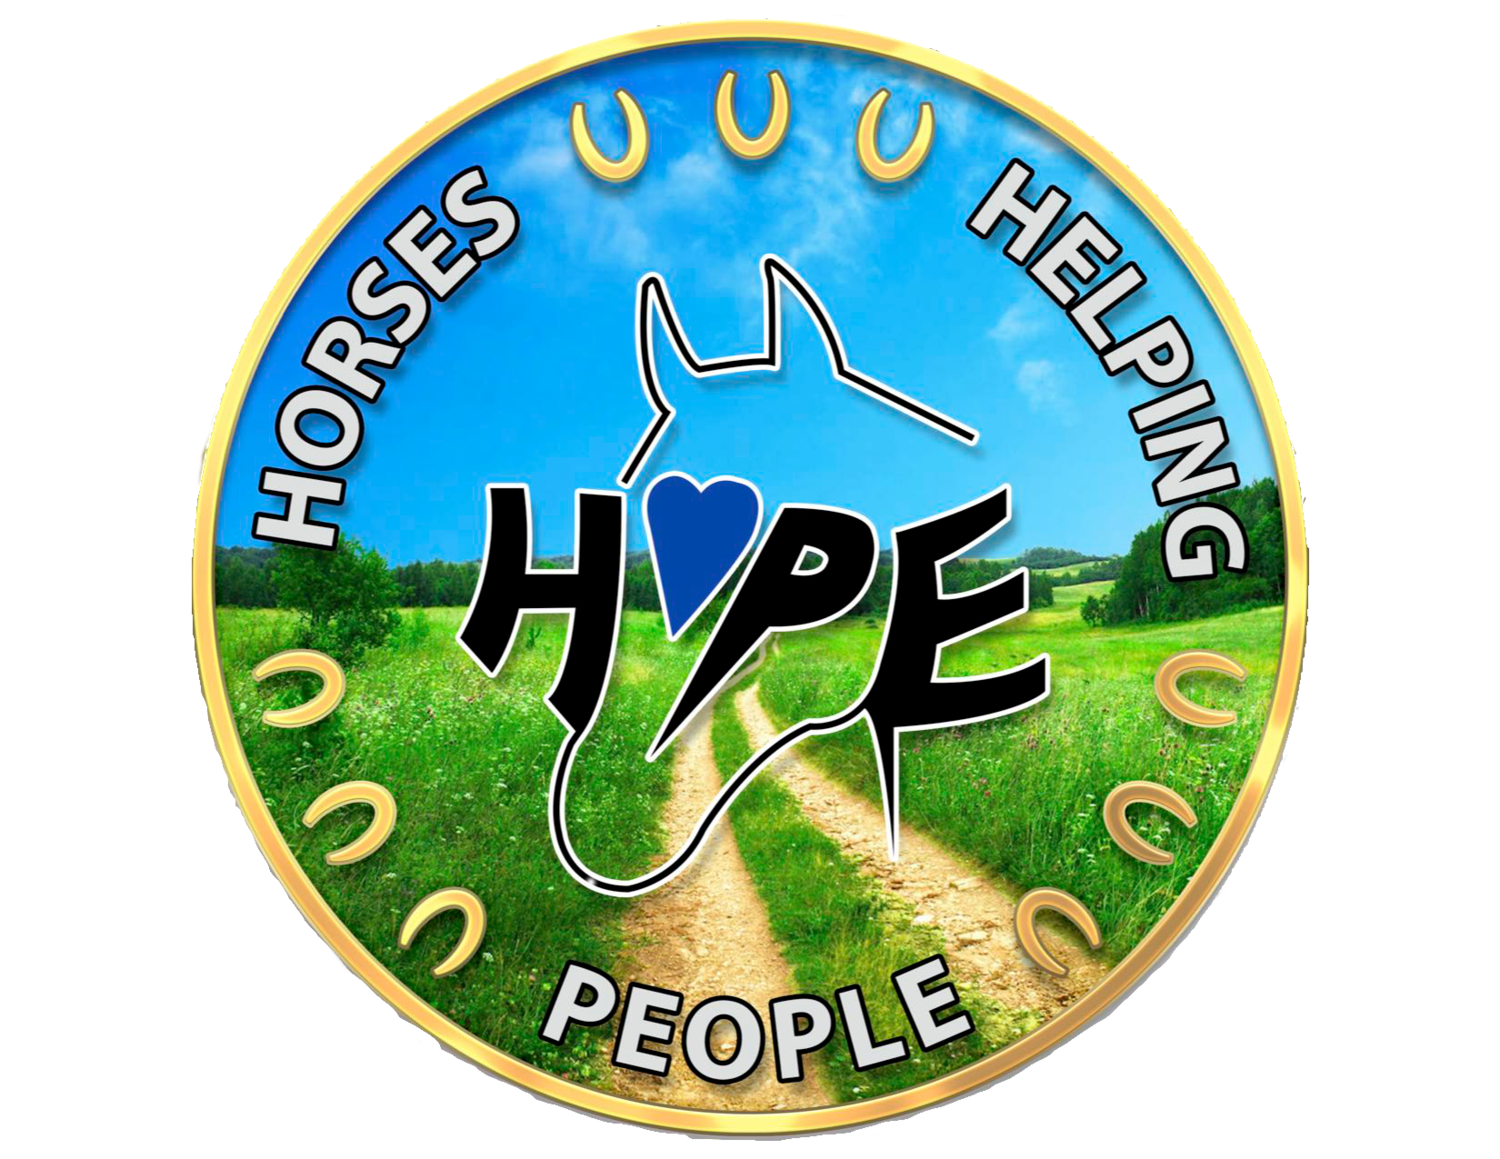 HOPE - HOrses Helping PEople